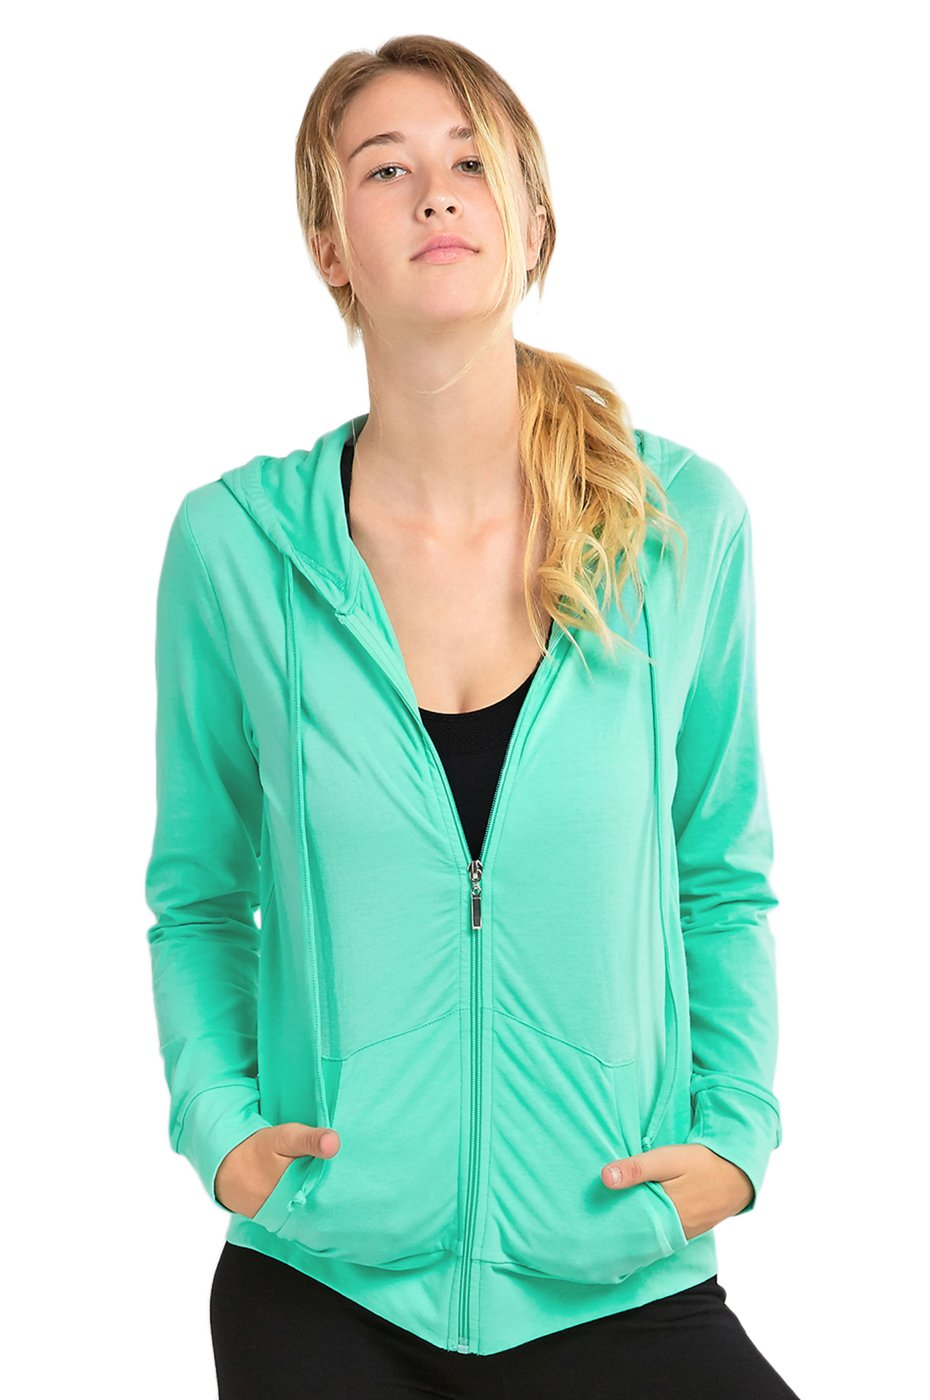 Sofra Women's Thin Cotton Zip-Up Jacket with Hoodie (M, Mint)